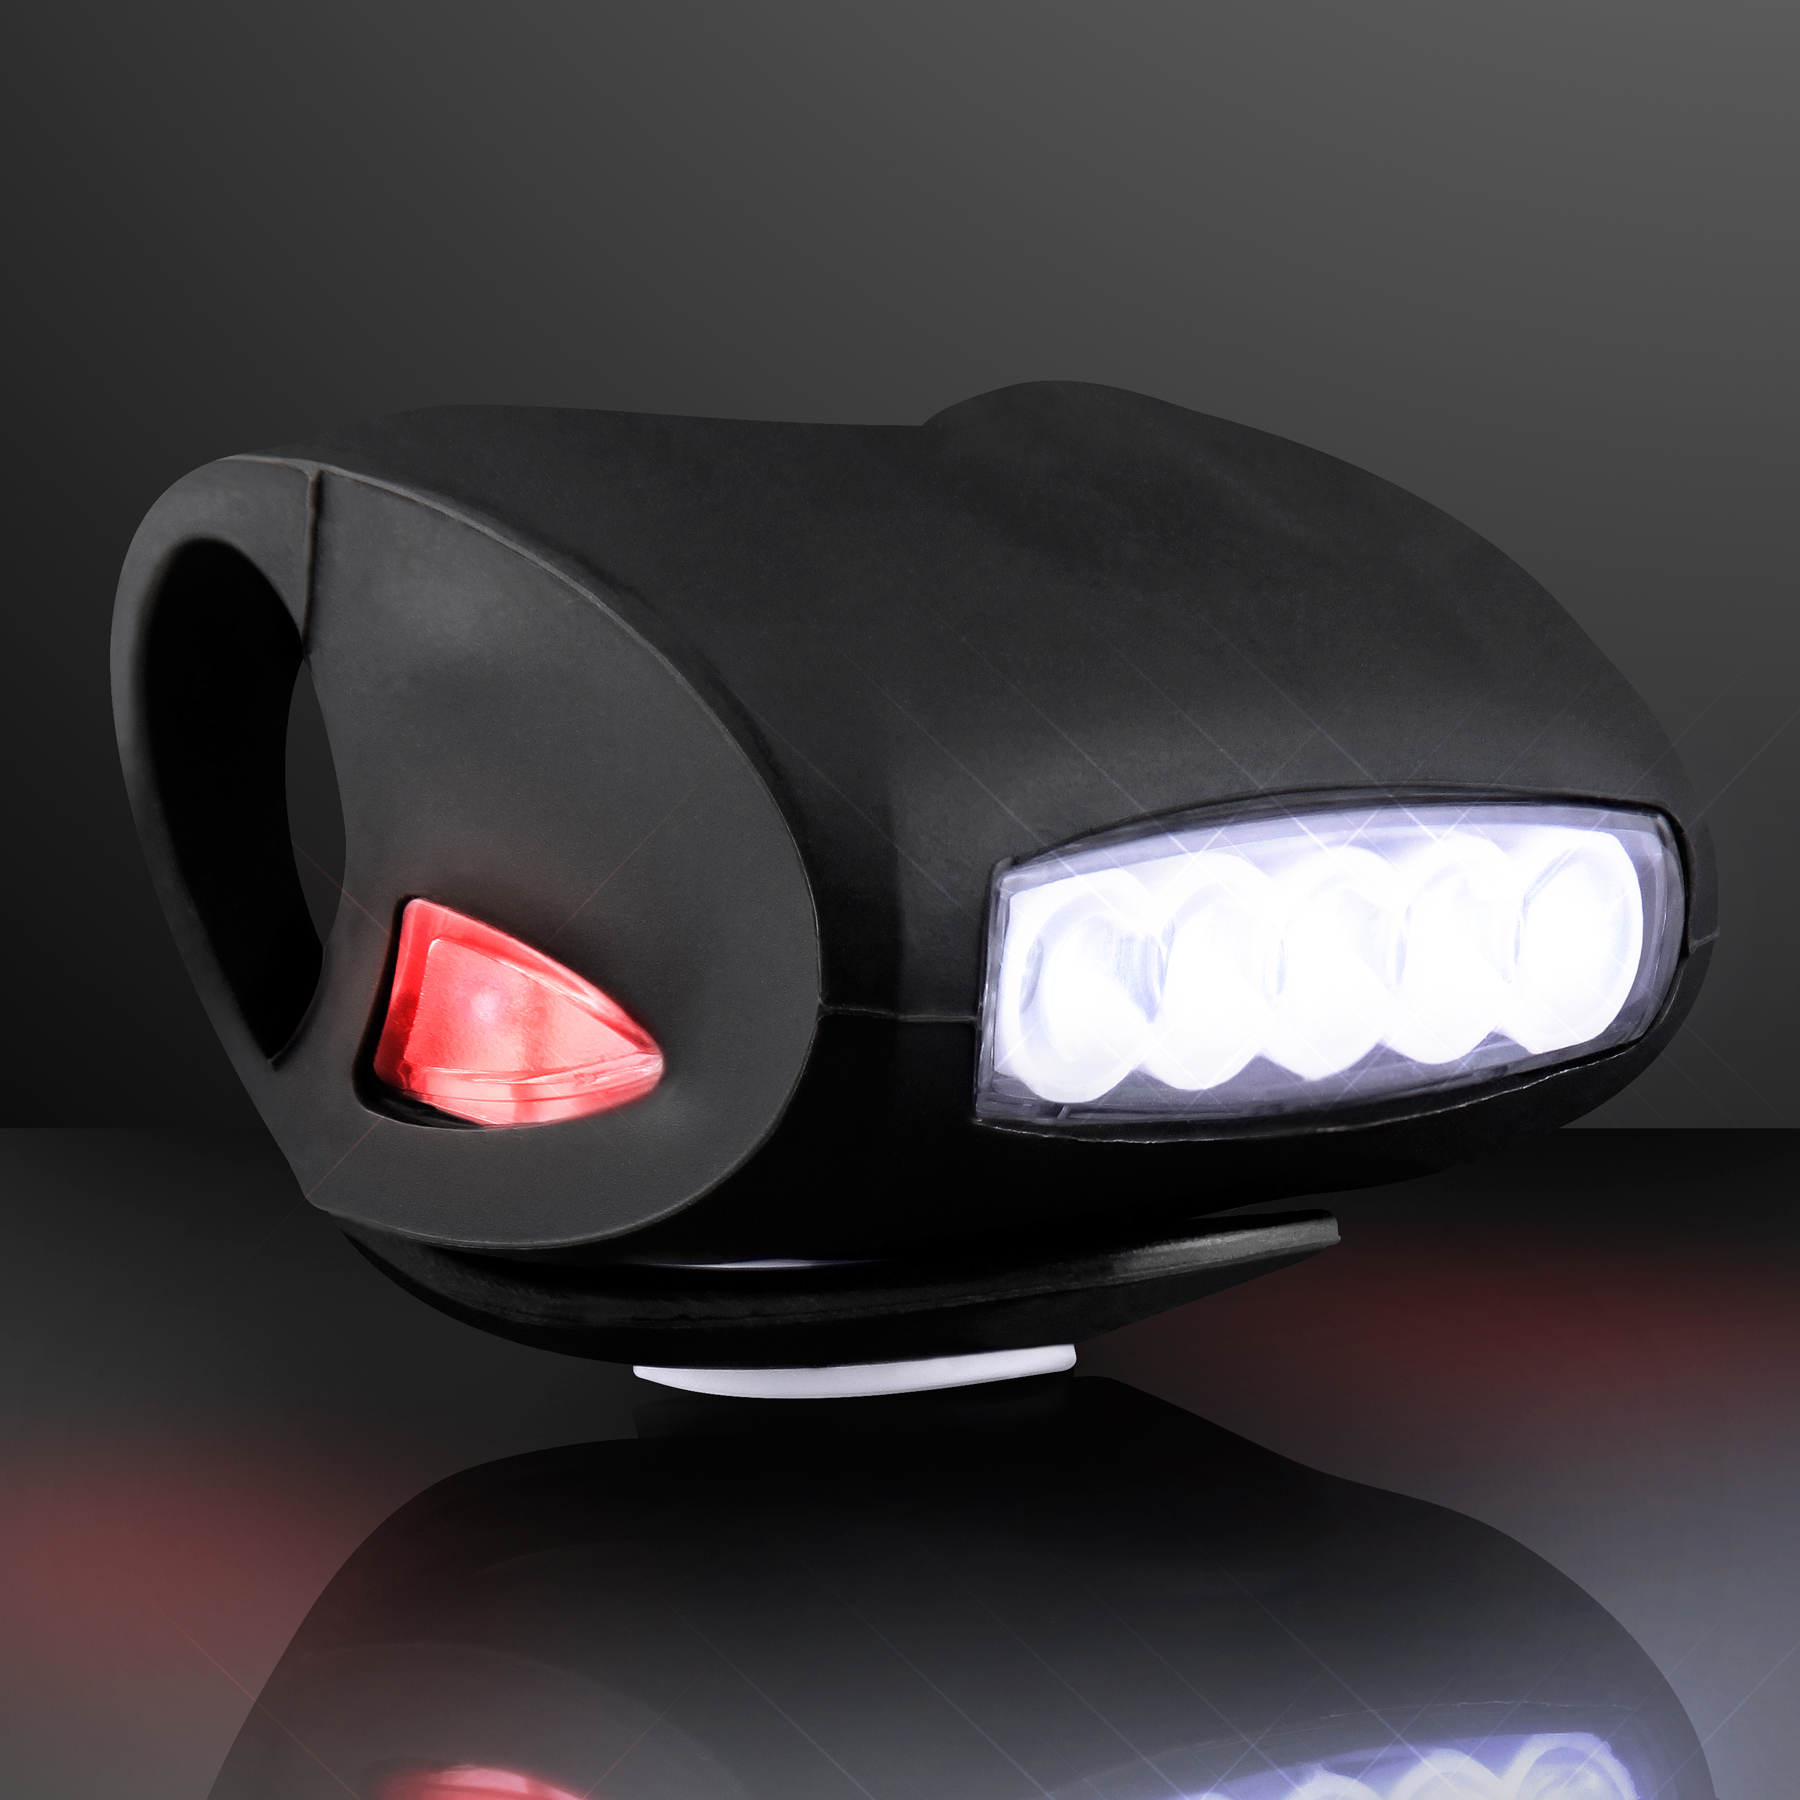 FlashingBlinkyLights Black Bicycle Headlight for Night Rides with White LED